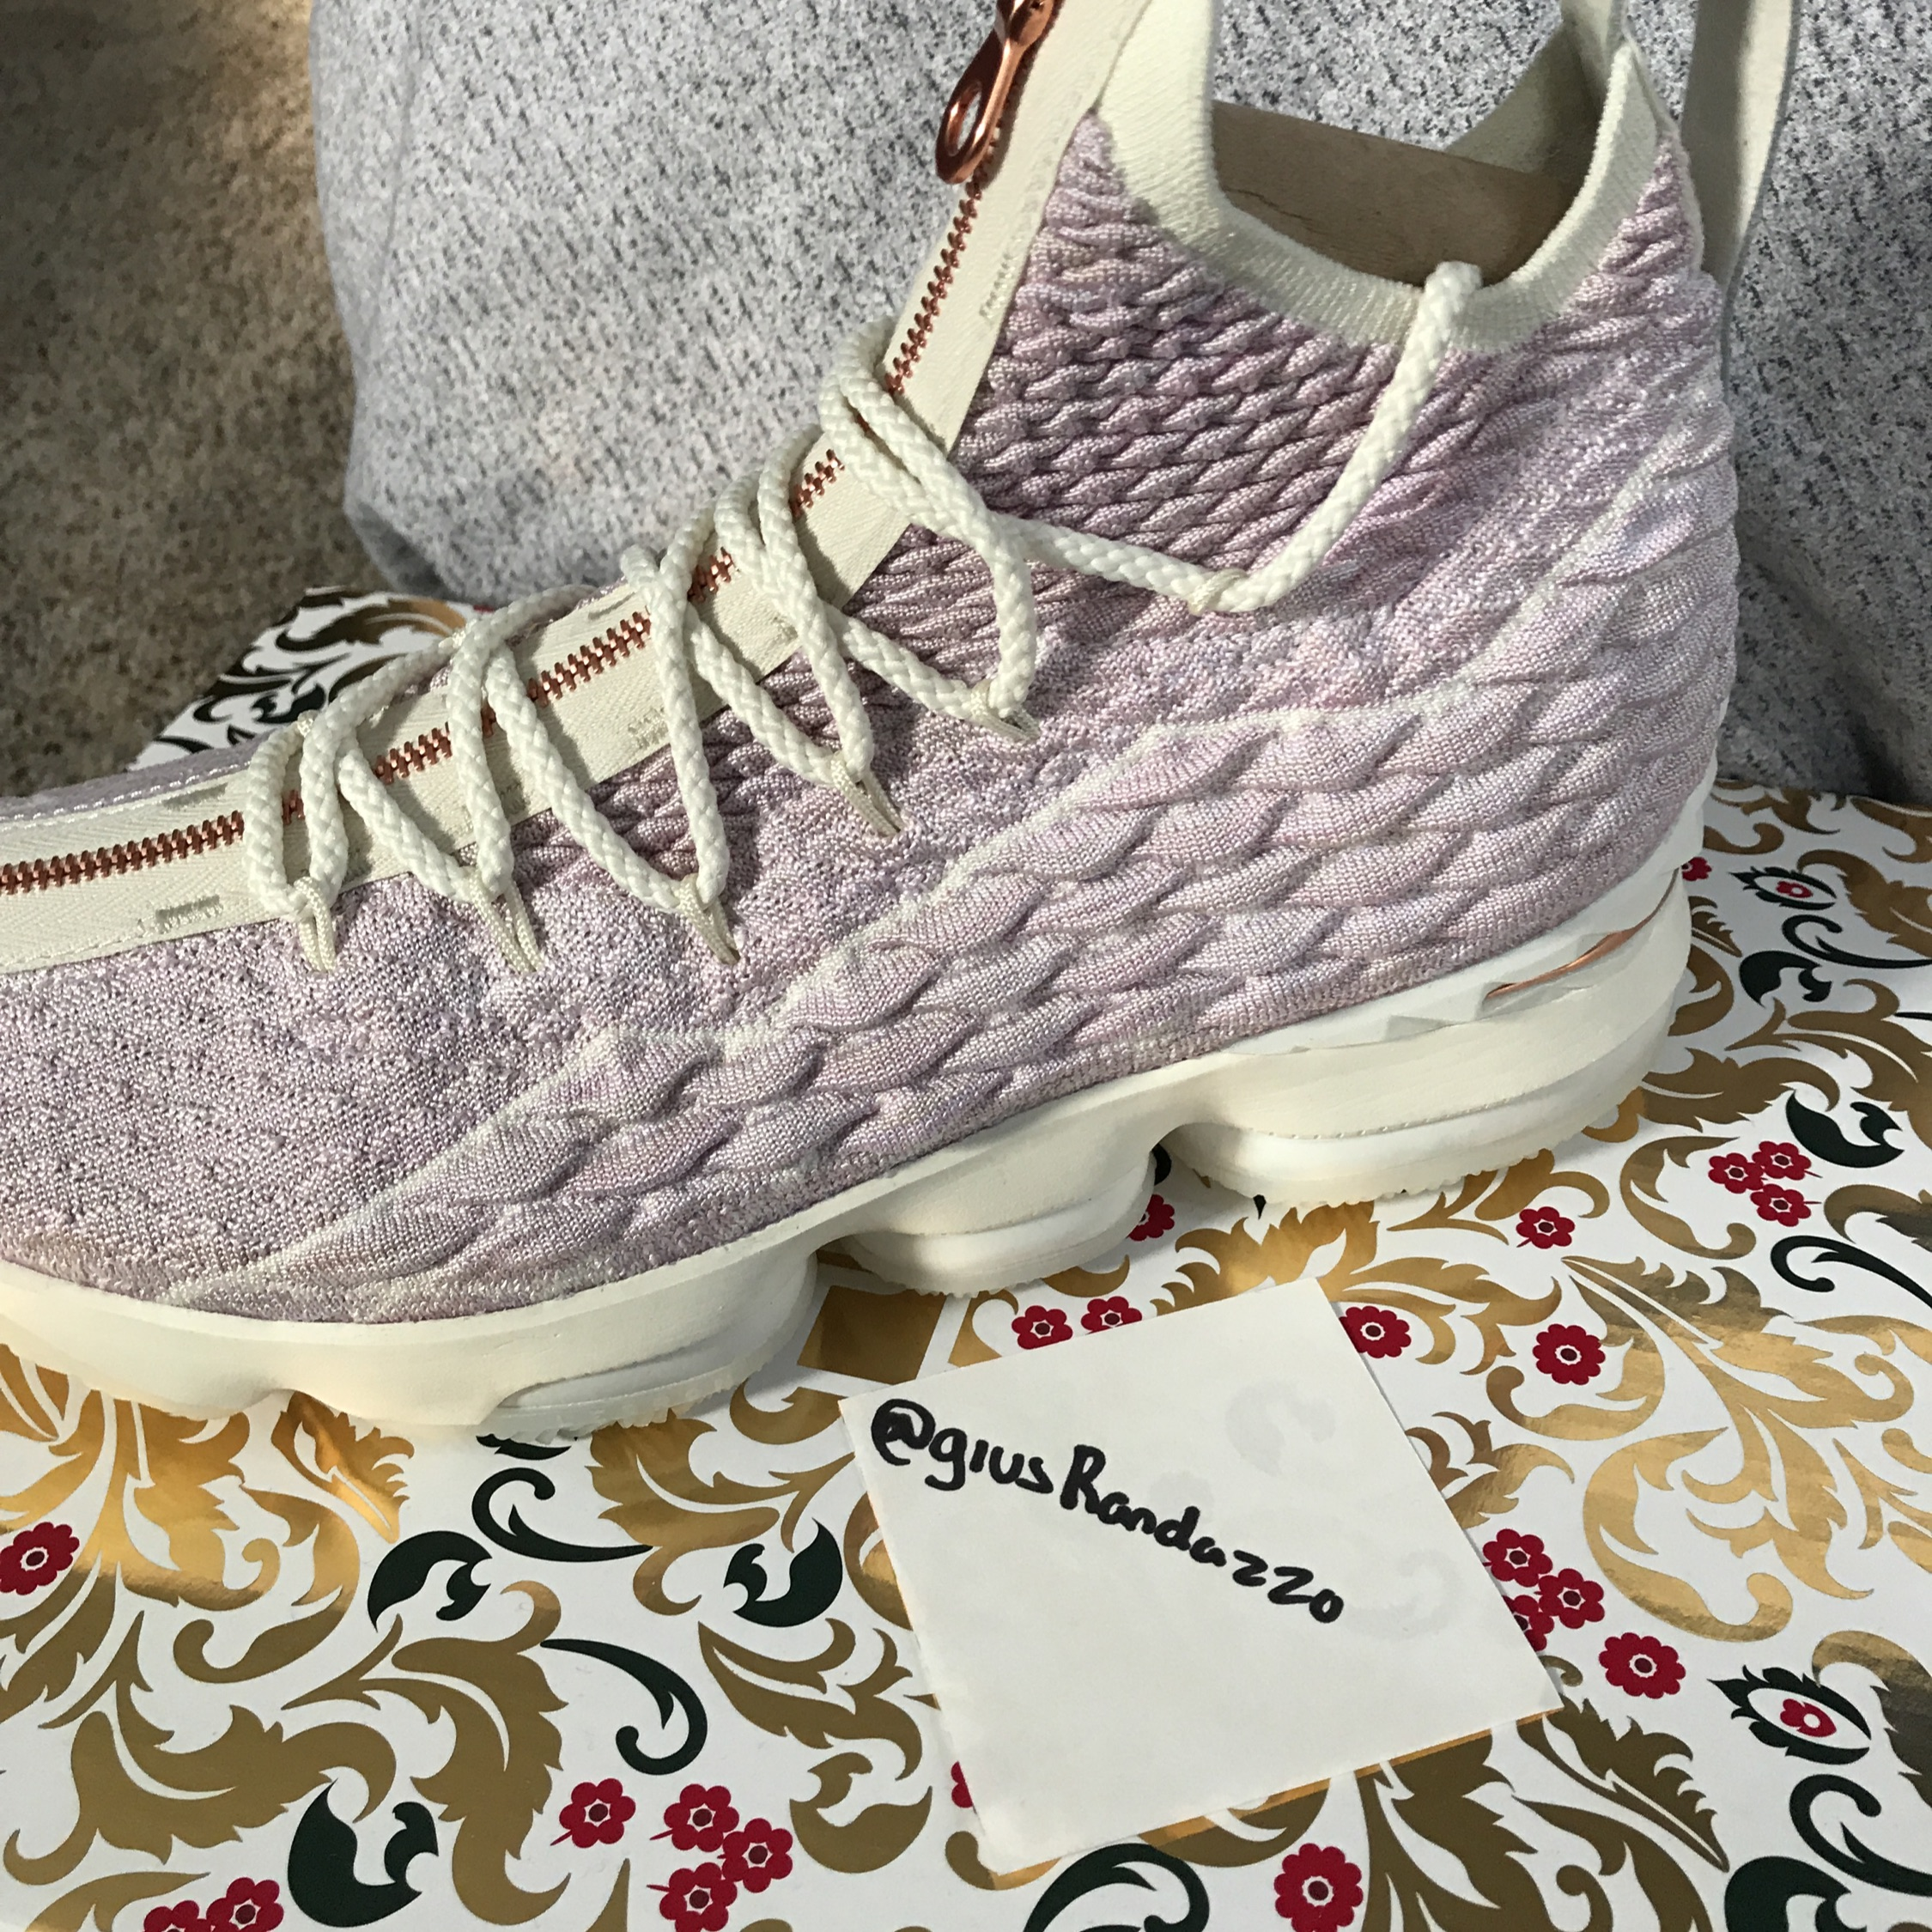 newest 8a311 83790 Lebron 15 X Kith Performance Collab